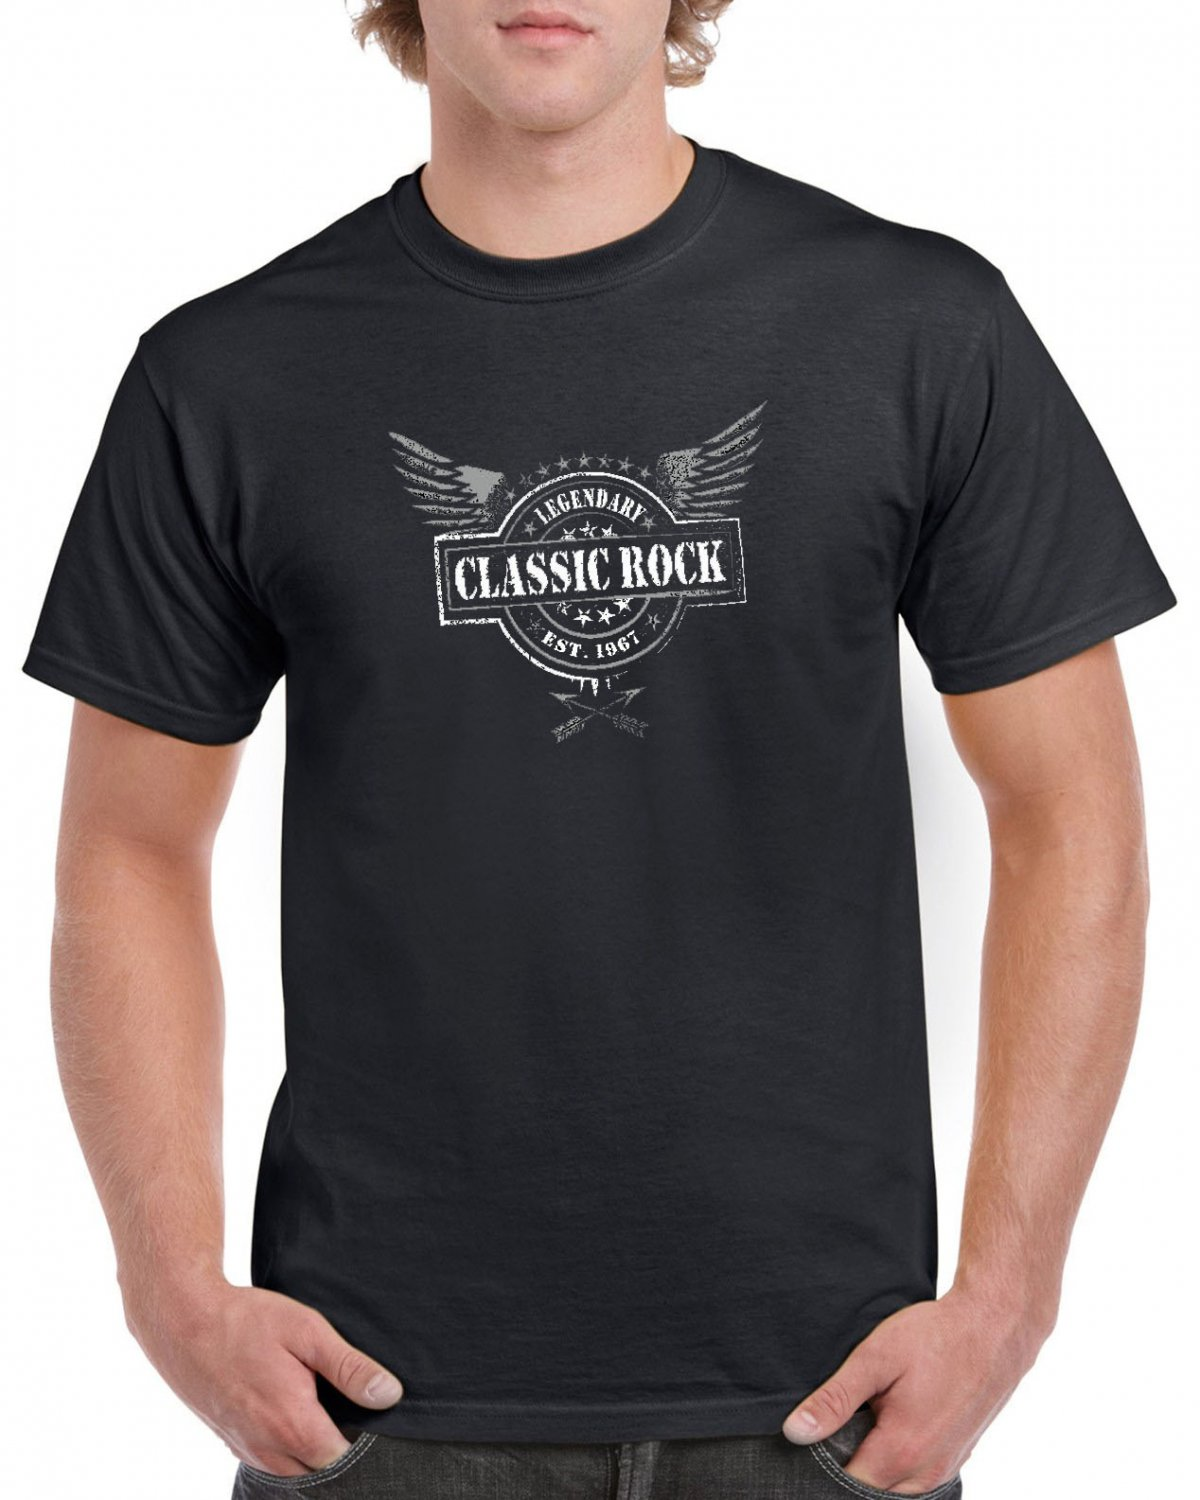 Classic Rock Legendary T-shirt Cool Hard Rock Tshirt Music Band Top Tee